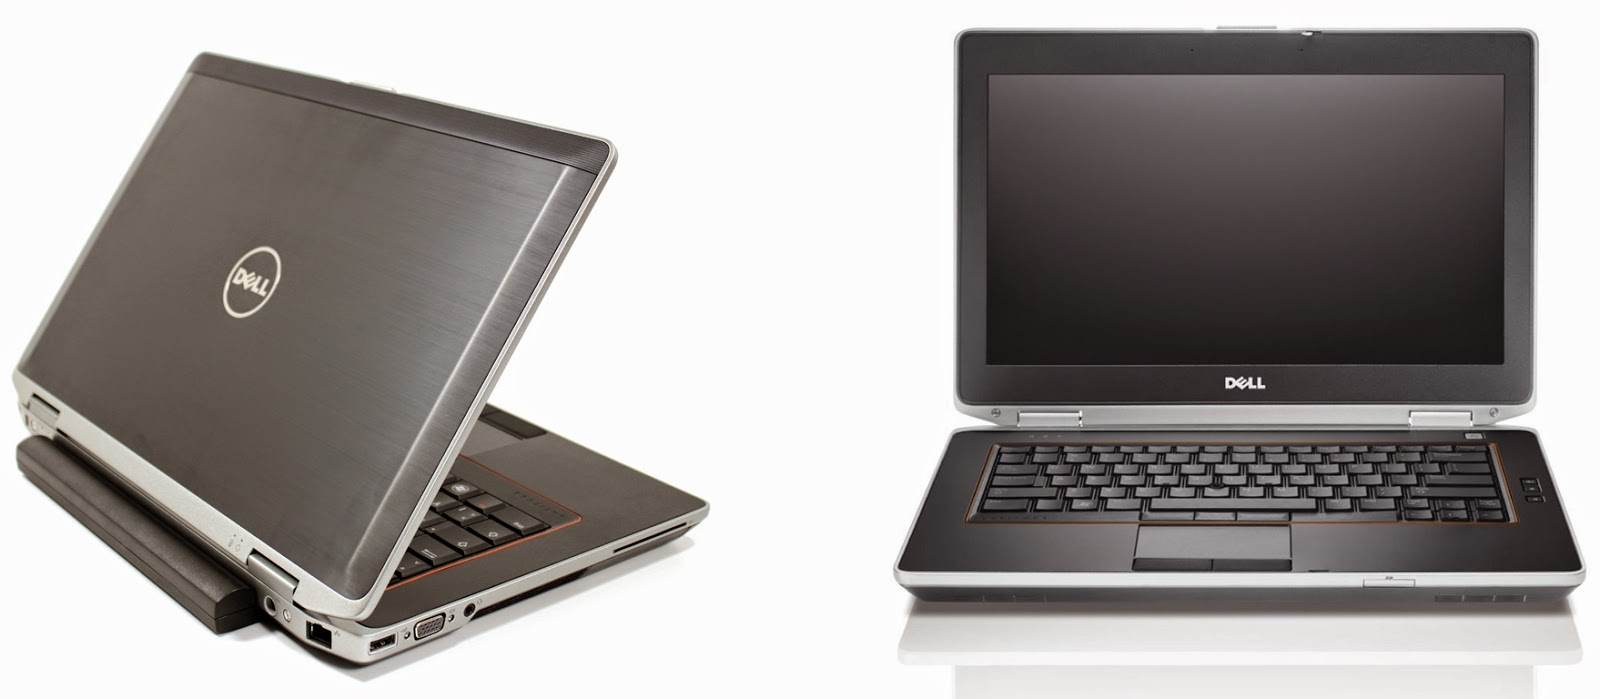 DELL LATITUDE E6420 NOTEBOOK 375 BLUETOOTH APPLICATION A04 DRIVER DOWNLOAD FREE